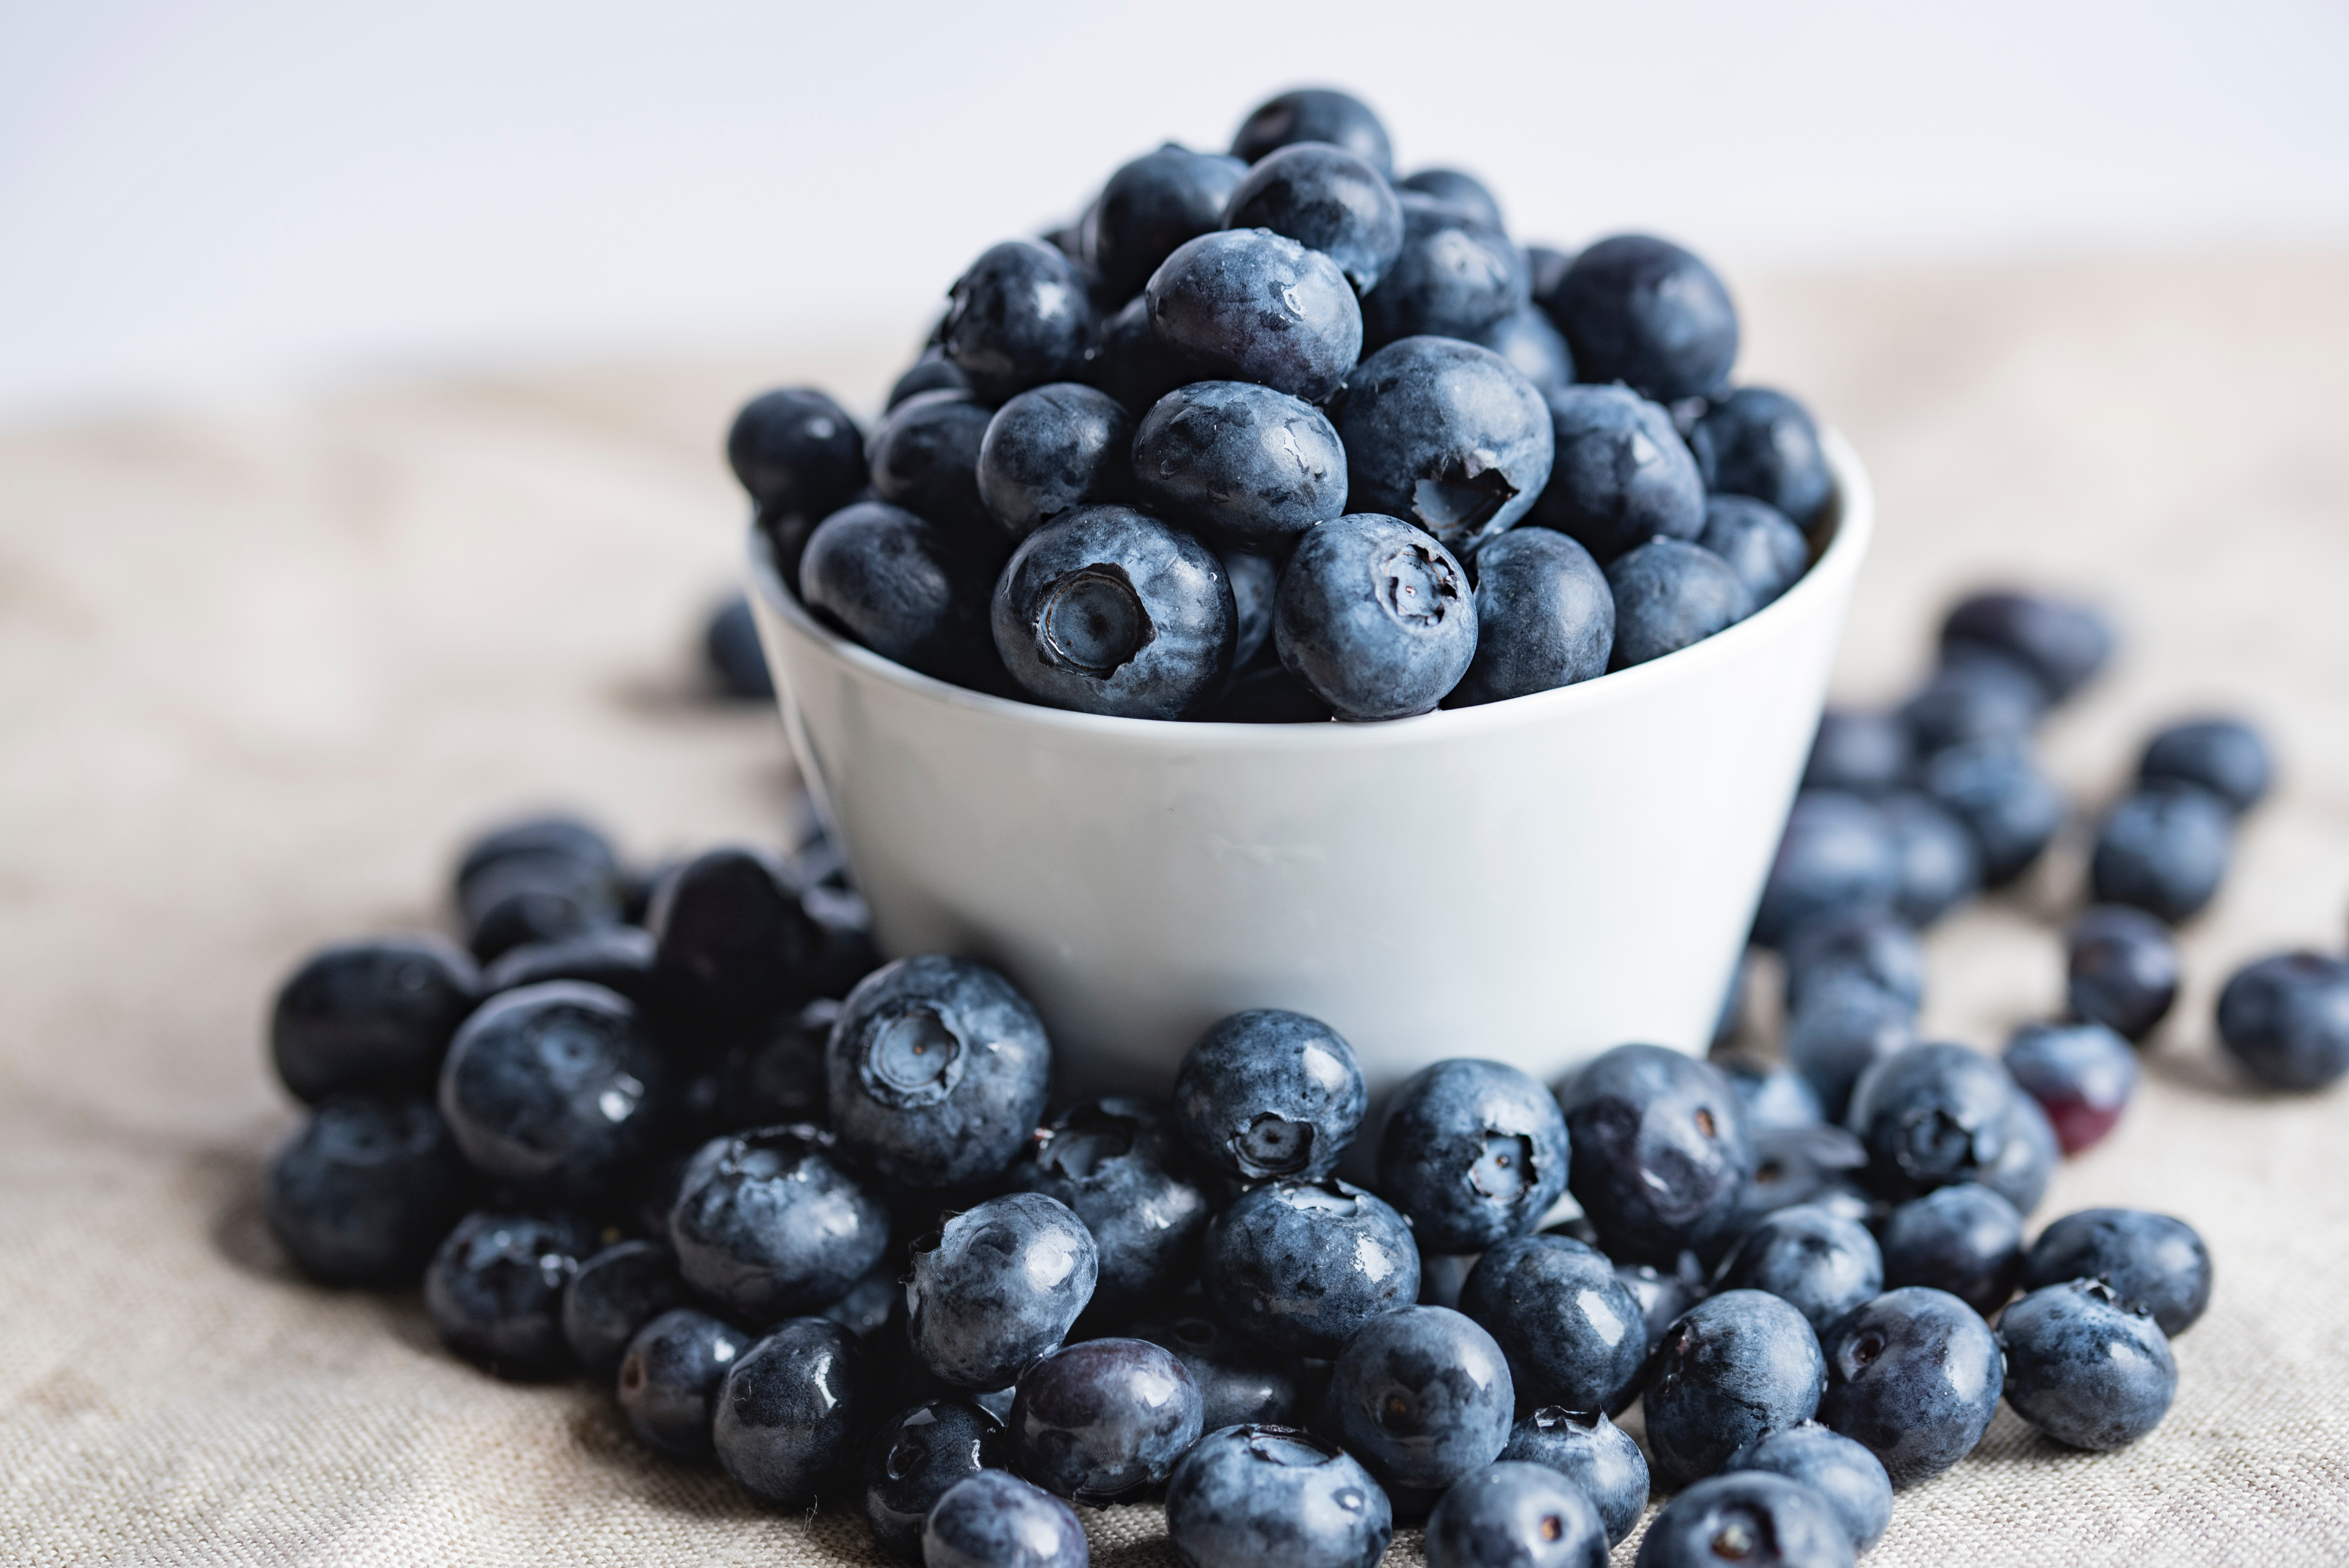 Chilean blueberries aim to replace popcorn in Chinese cinemas 1e9cfdc9a06f